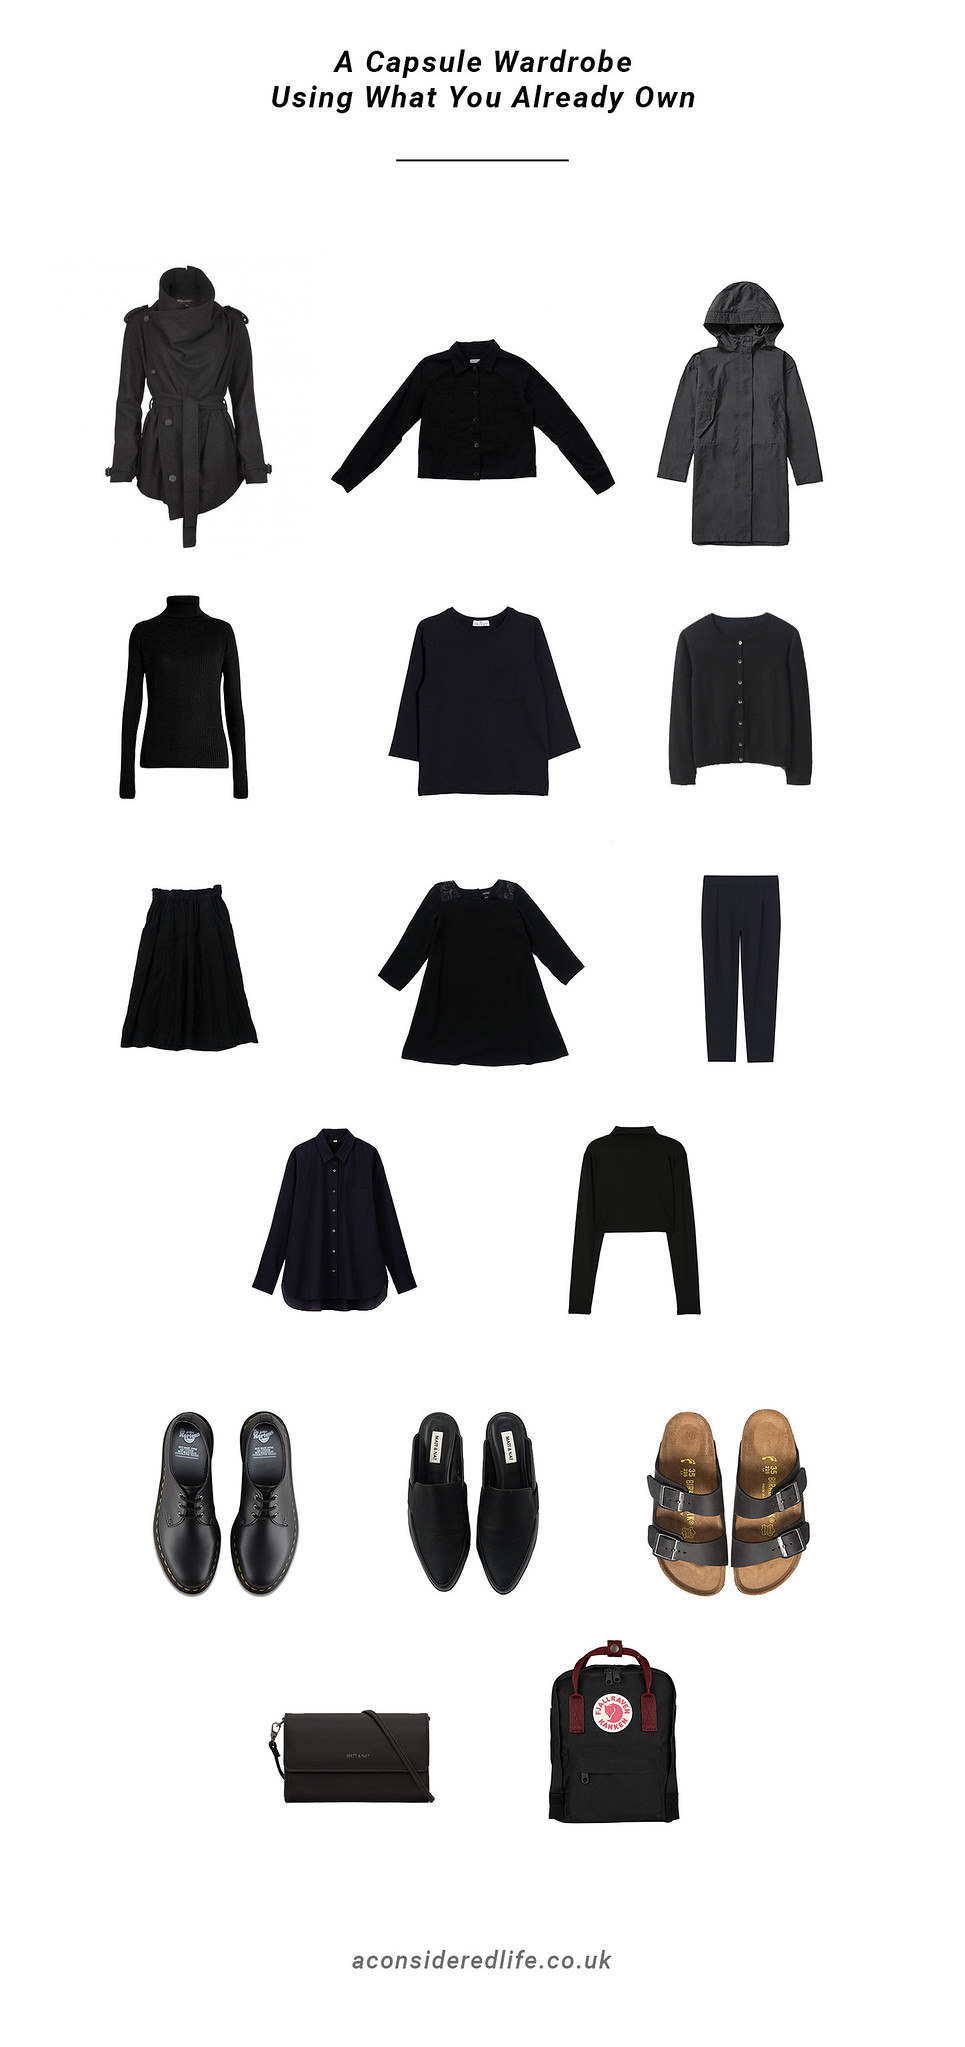 Making A Capsule Wardrobe (Using What You Already Own)